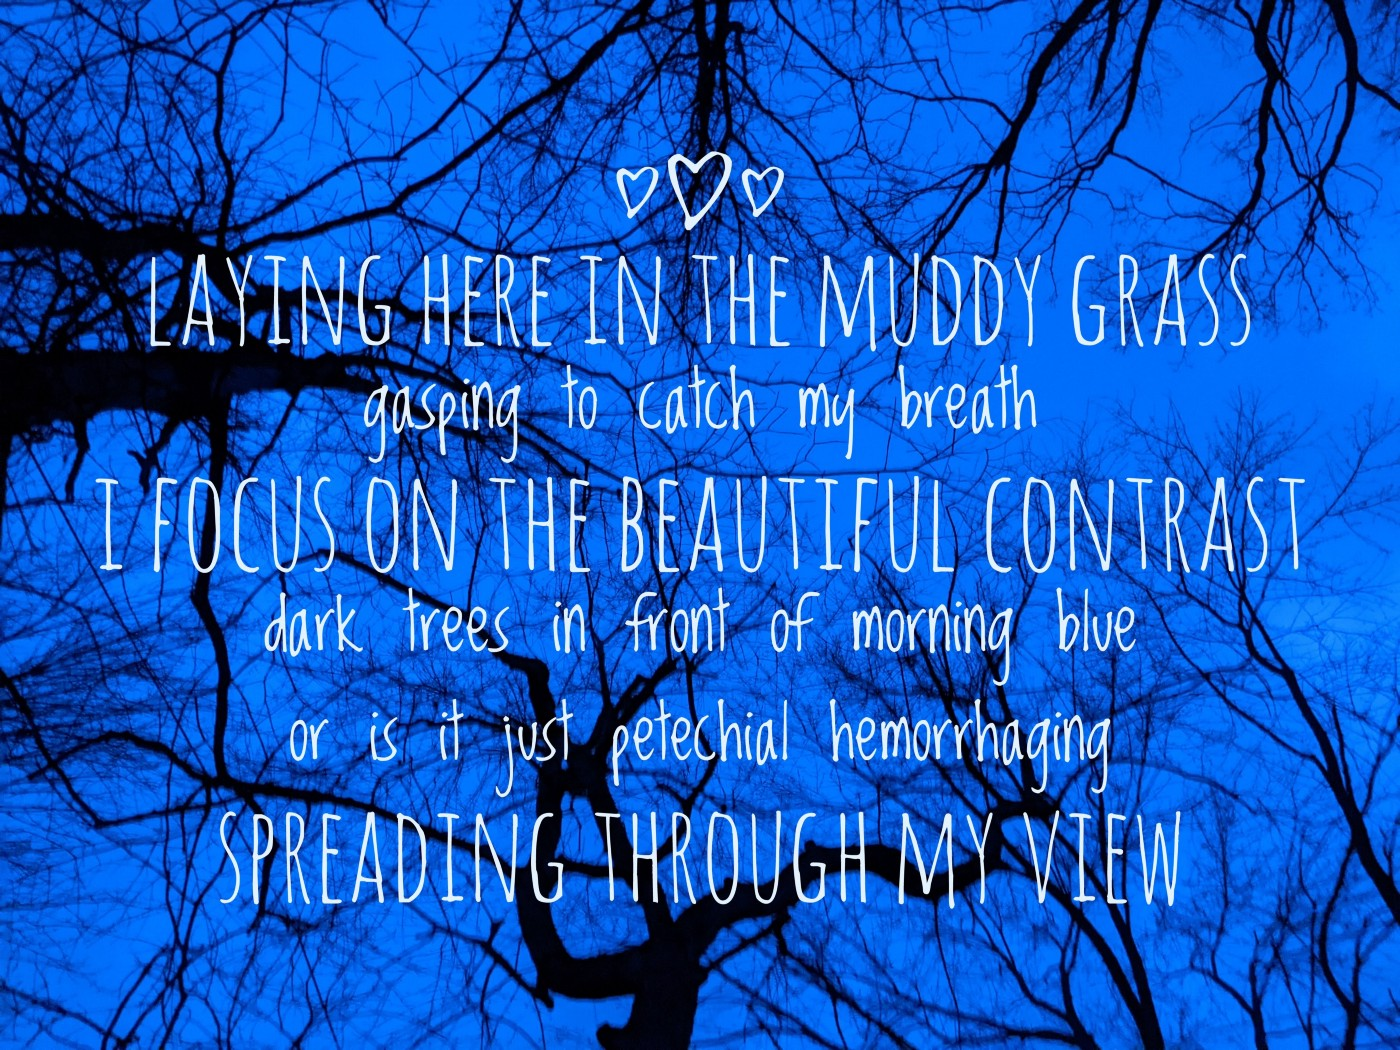 laying here in the muddy grass gasping to catch my breath i focus on the beautiful contrast dark trees in front of morning blue or is it just petechial hemorrhaging spreading through my view?